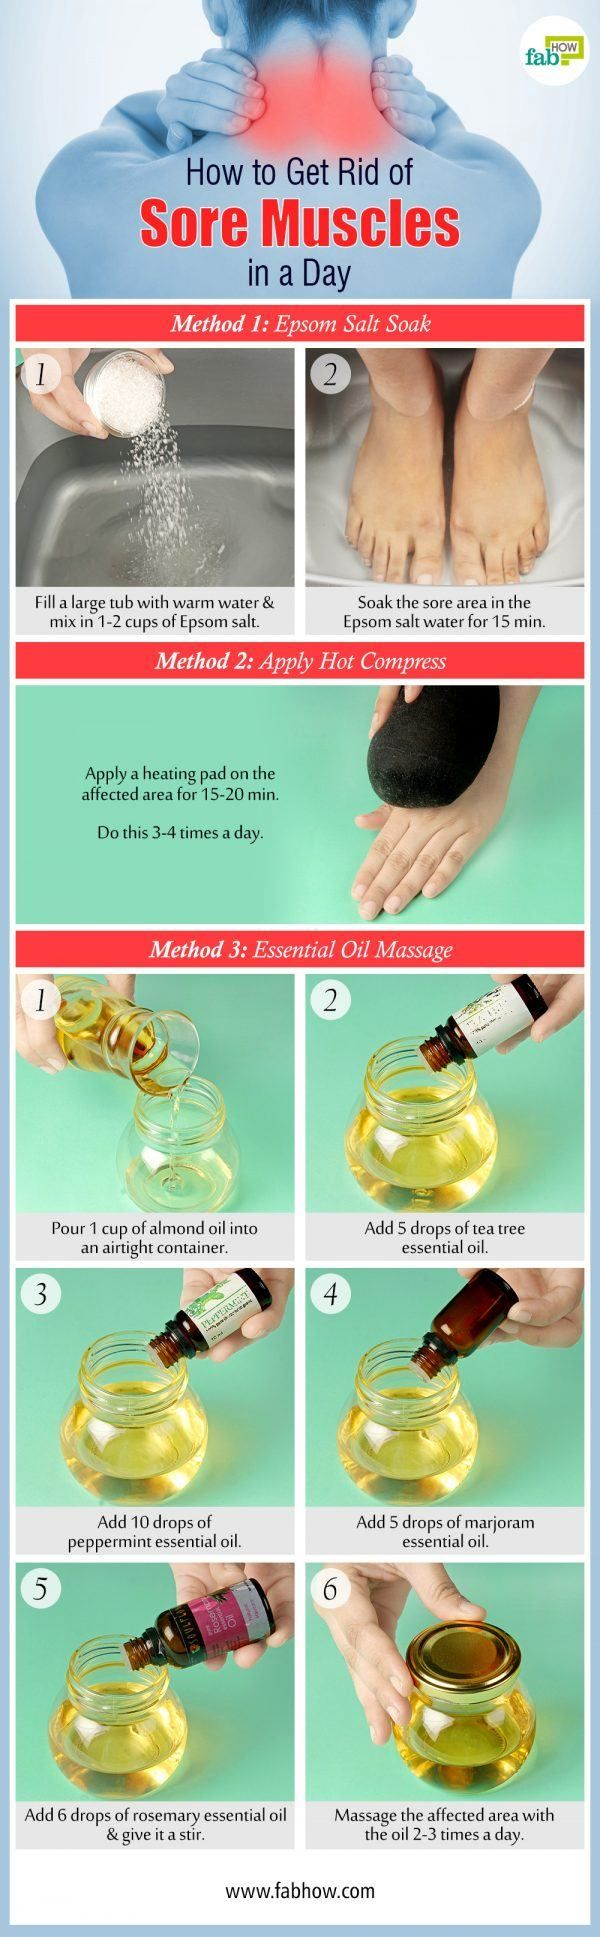 how to get rid of sore throat in a day